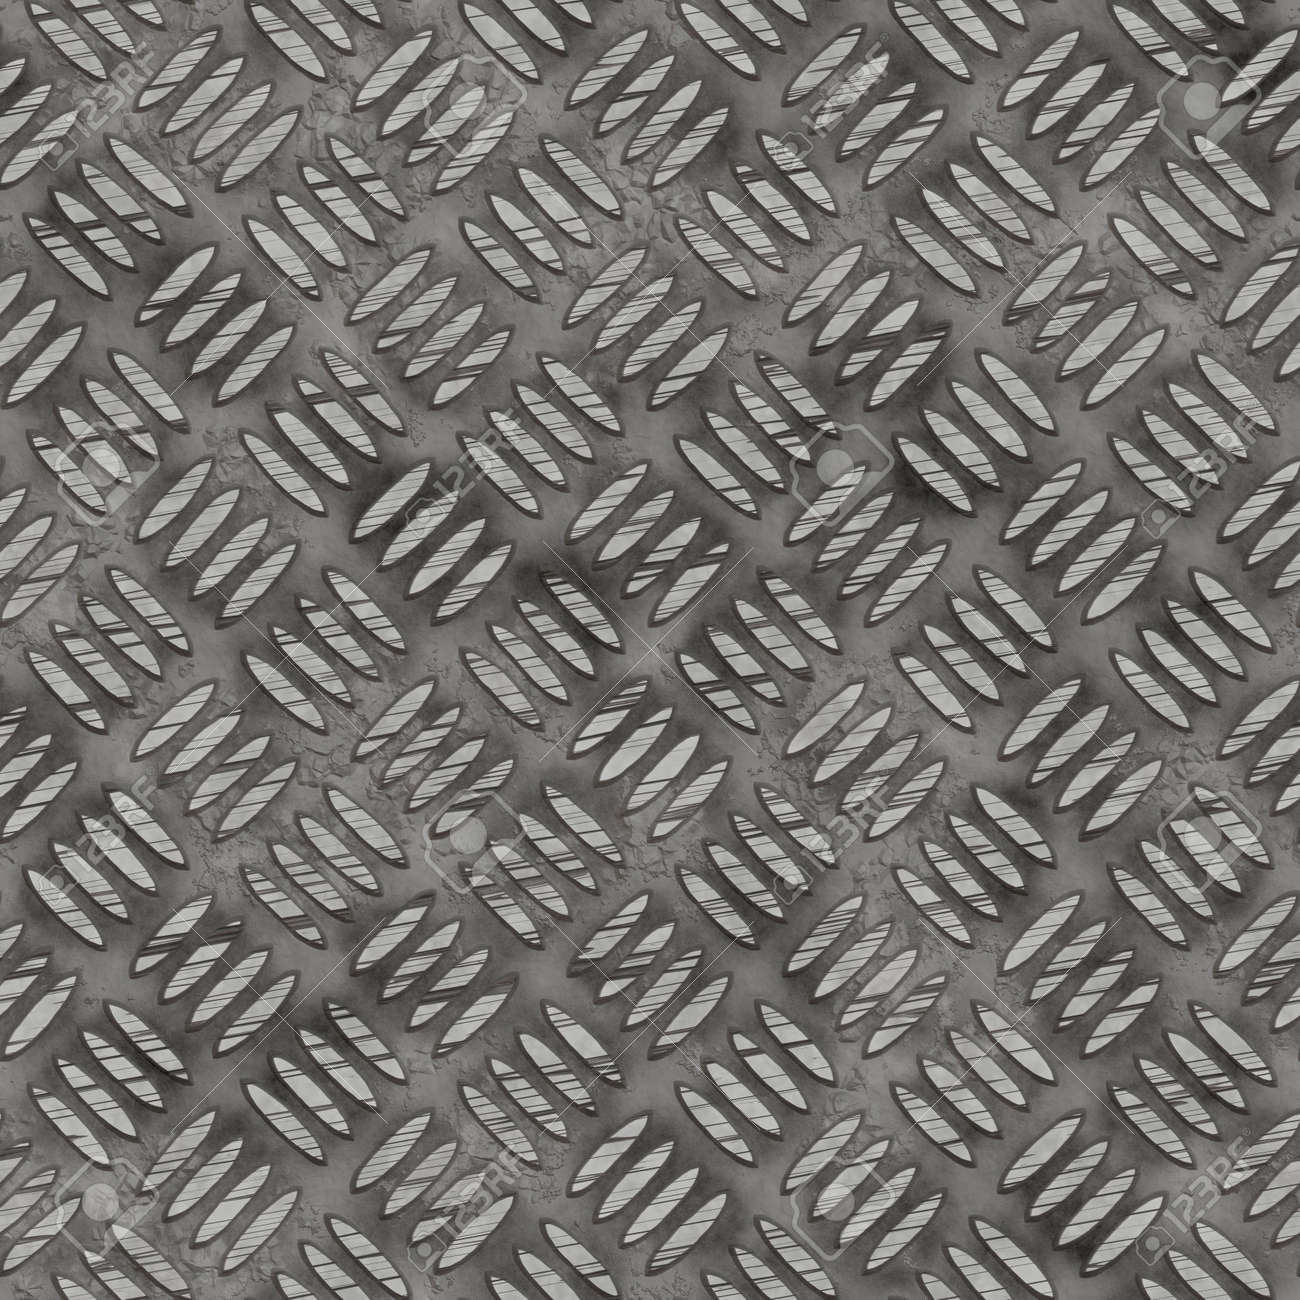 dirty metal plate, seamlessly tillable as a pattern Stock Photo - 3815269